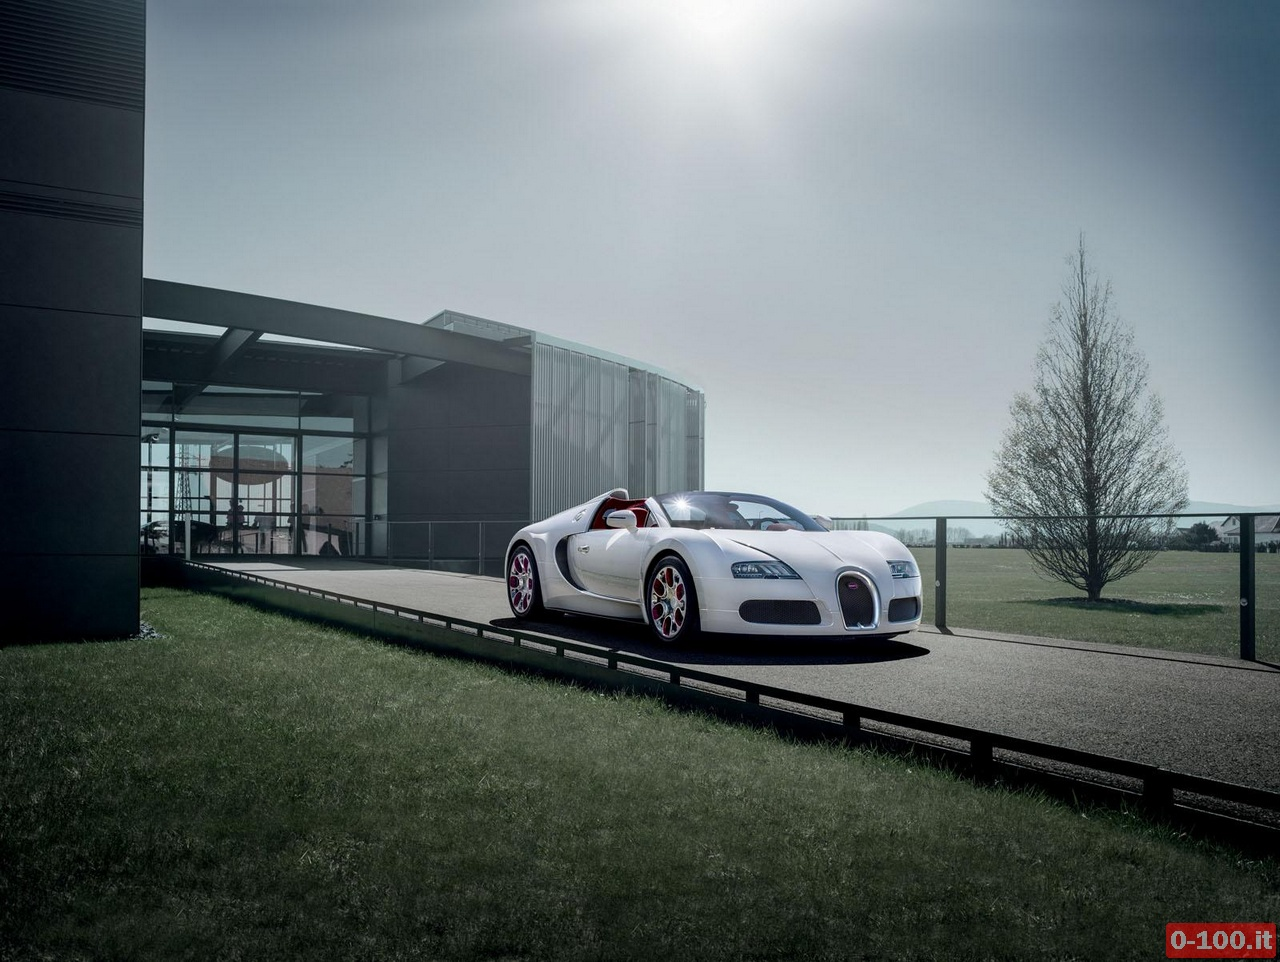 bugatti veyron 16 4 grand sport wei long 0 100 motori orologi lifestyle. Black Bedroom Furniture Sets. Home Design Ideas